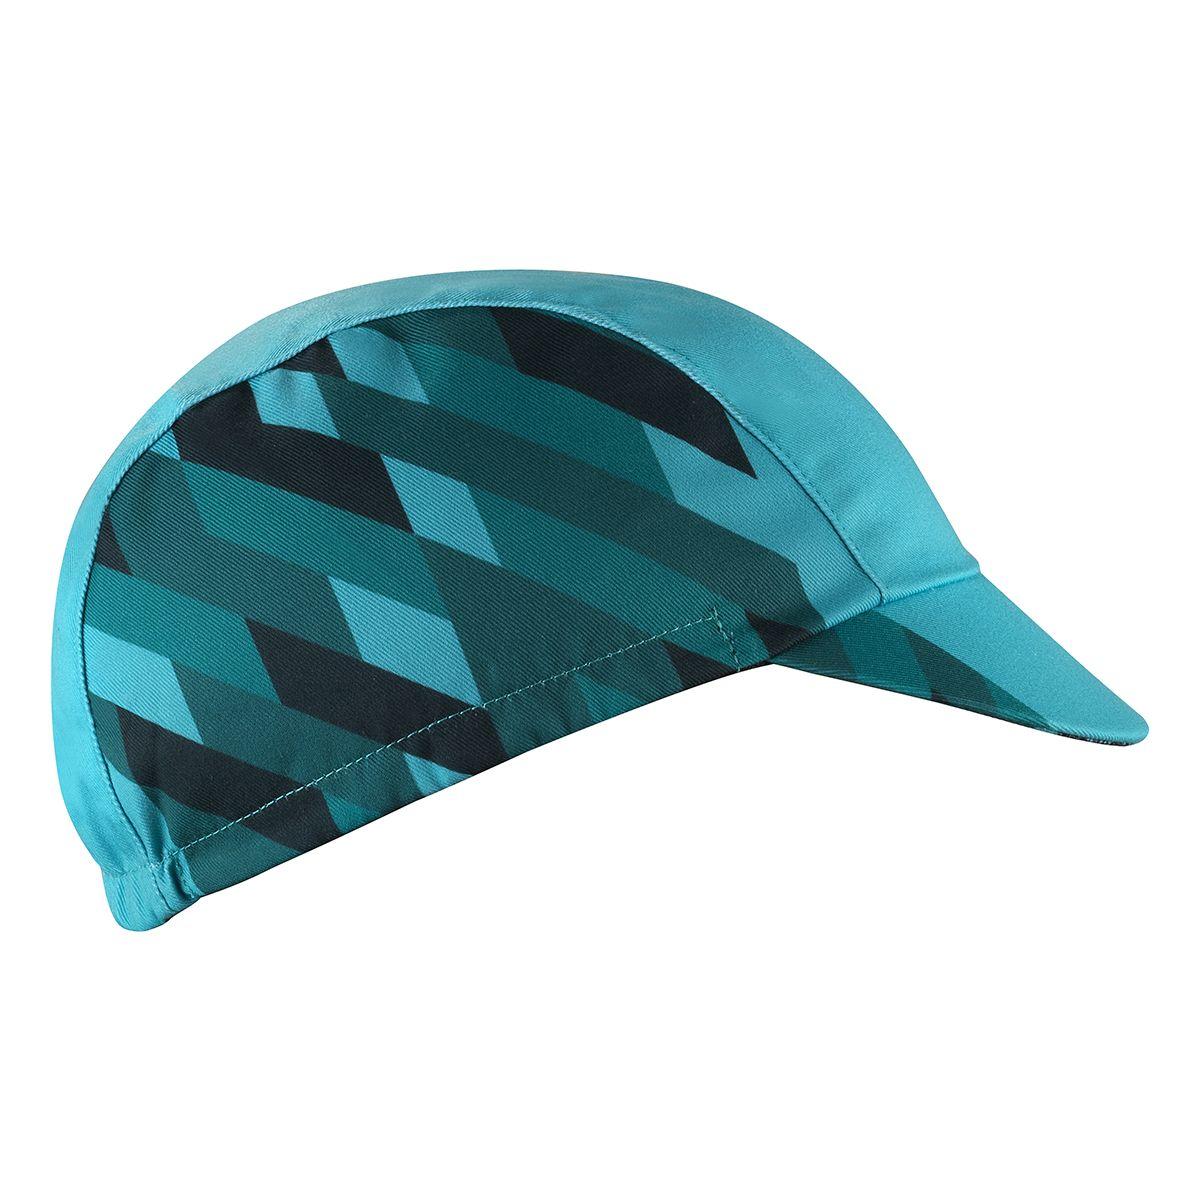 MAVIC GRAPHIC ROADIE cap | Headwear